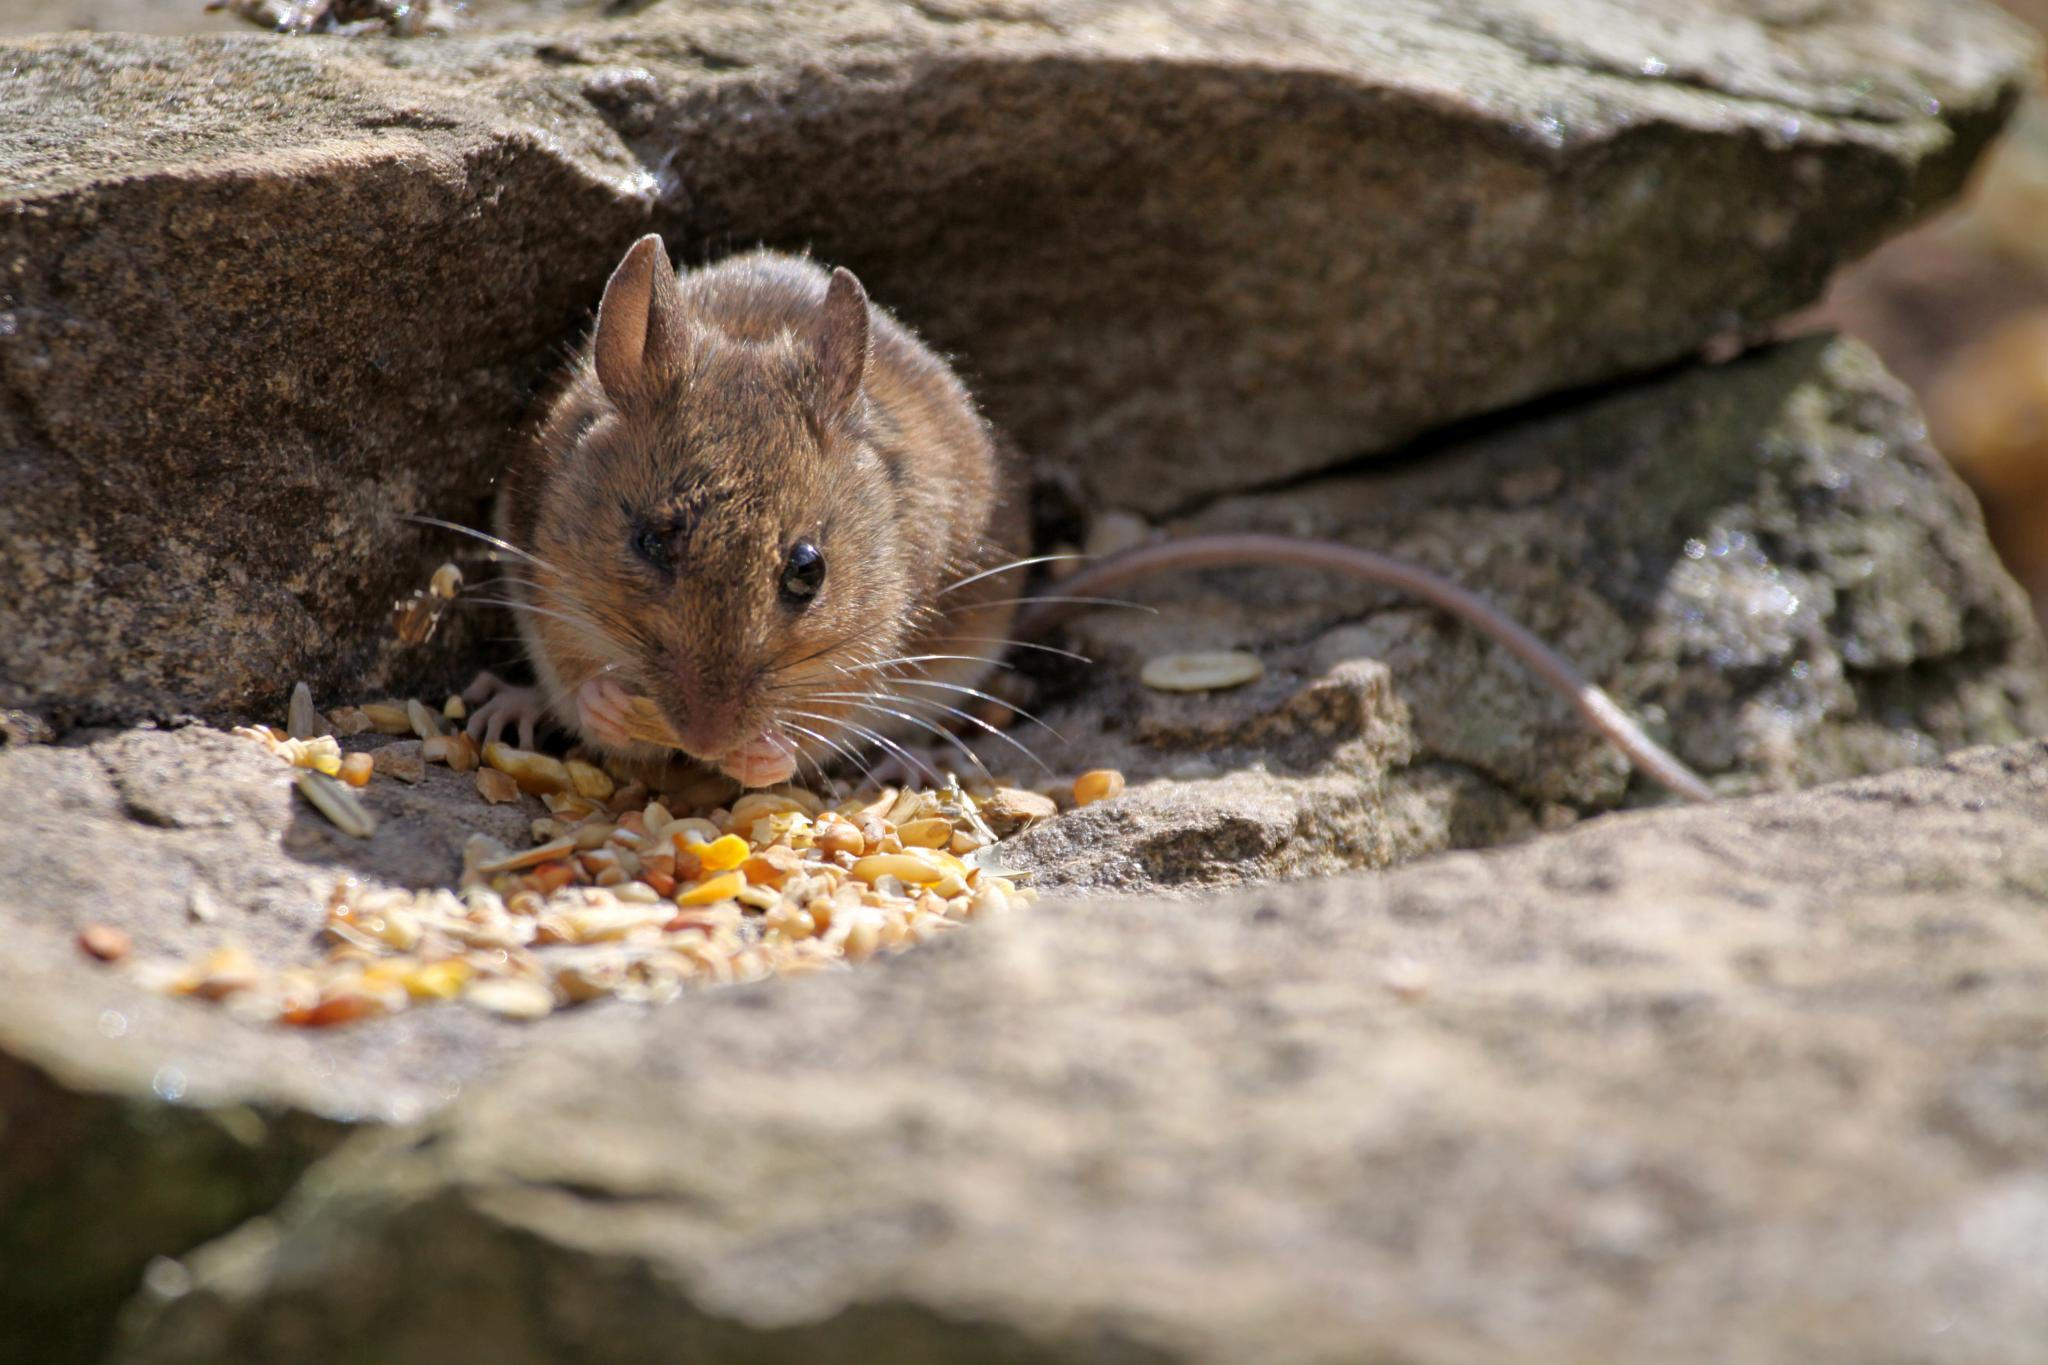 A Tasty Snack by Gerry Beever